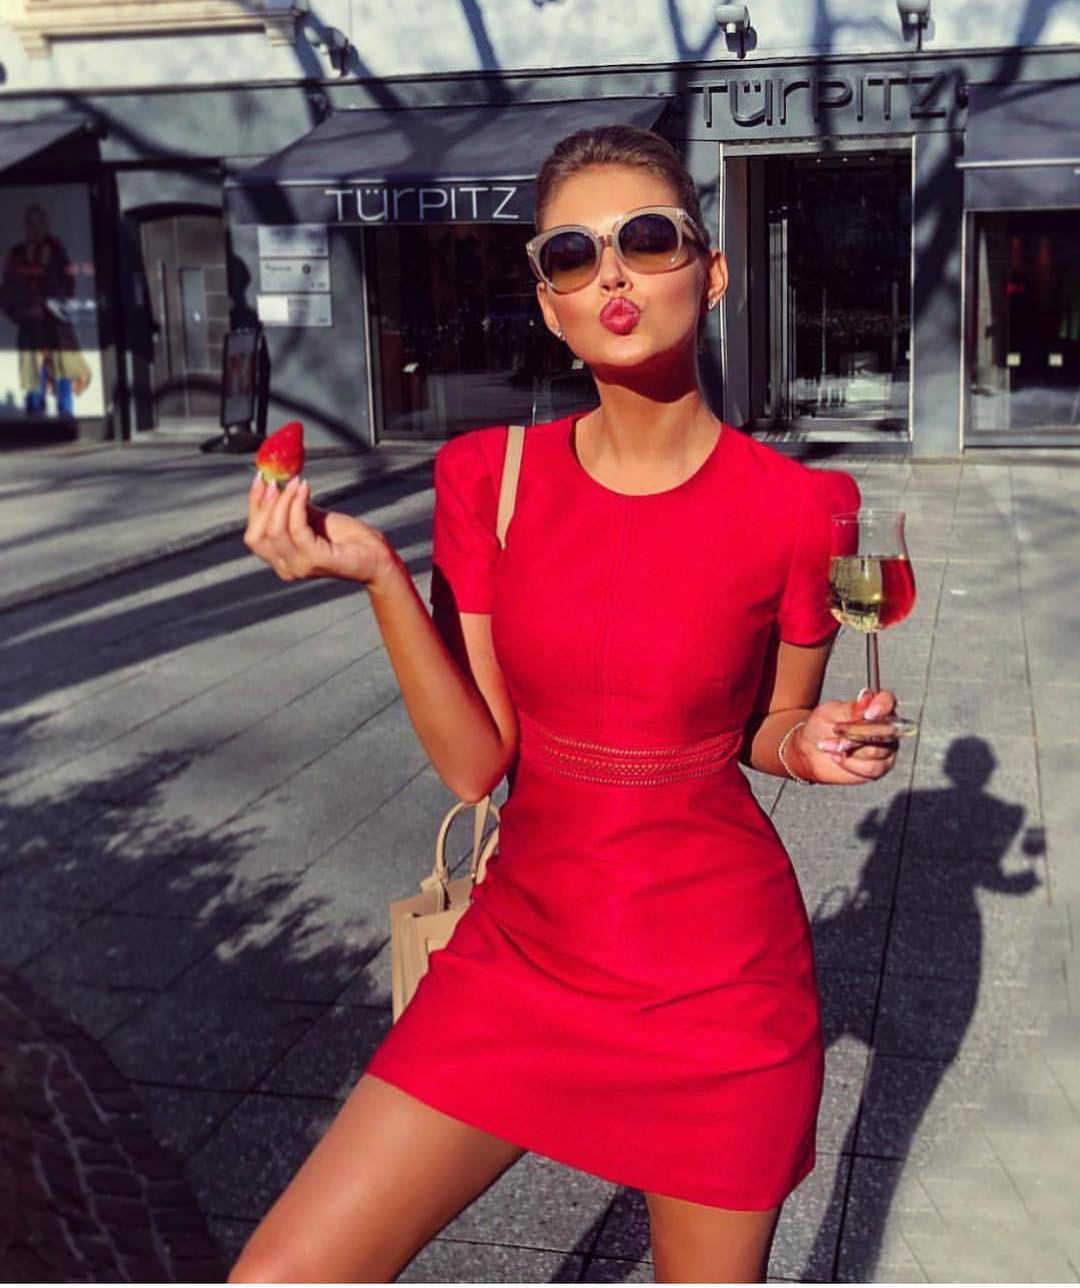 Mini Red Dress With Short Sleeves For Summer Street Walks 2020